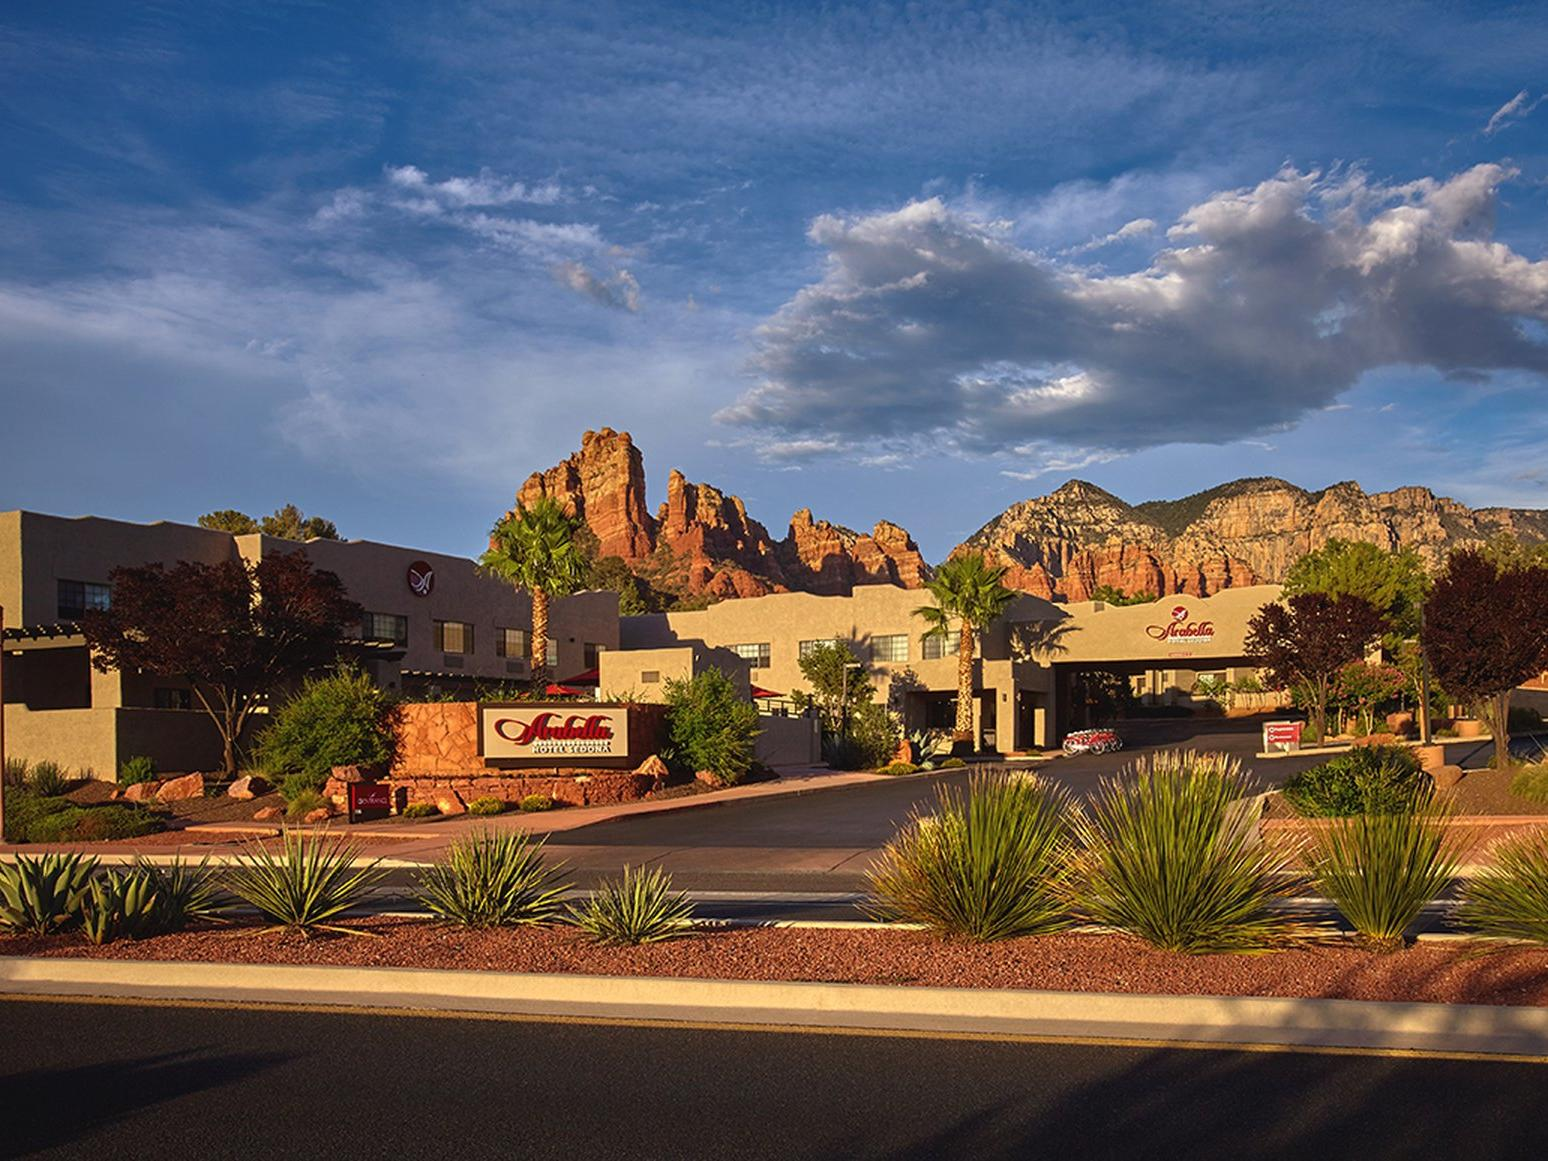 Arabella Hotel Sedona exterior with Red Rocks in background.